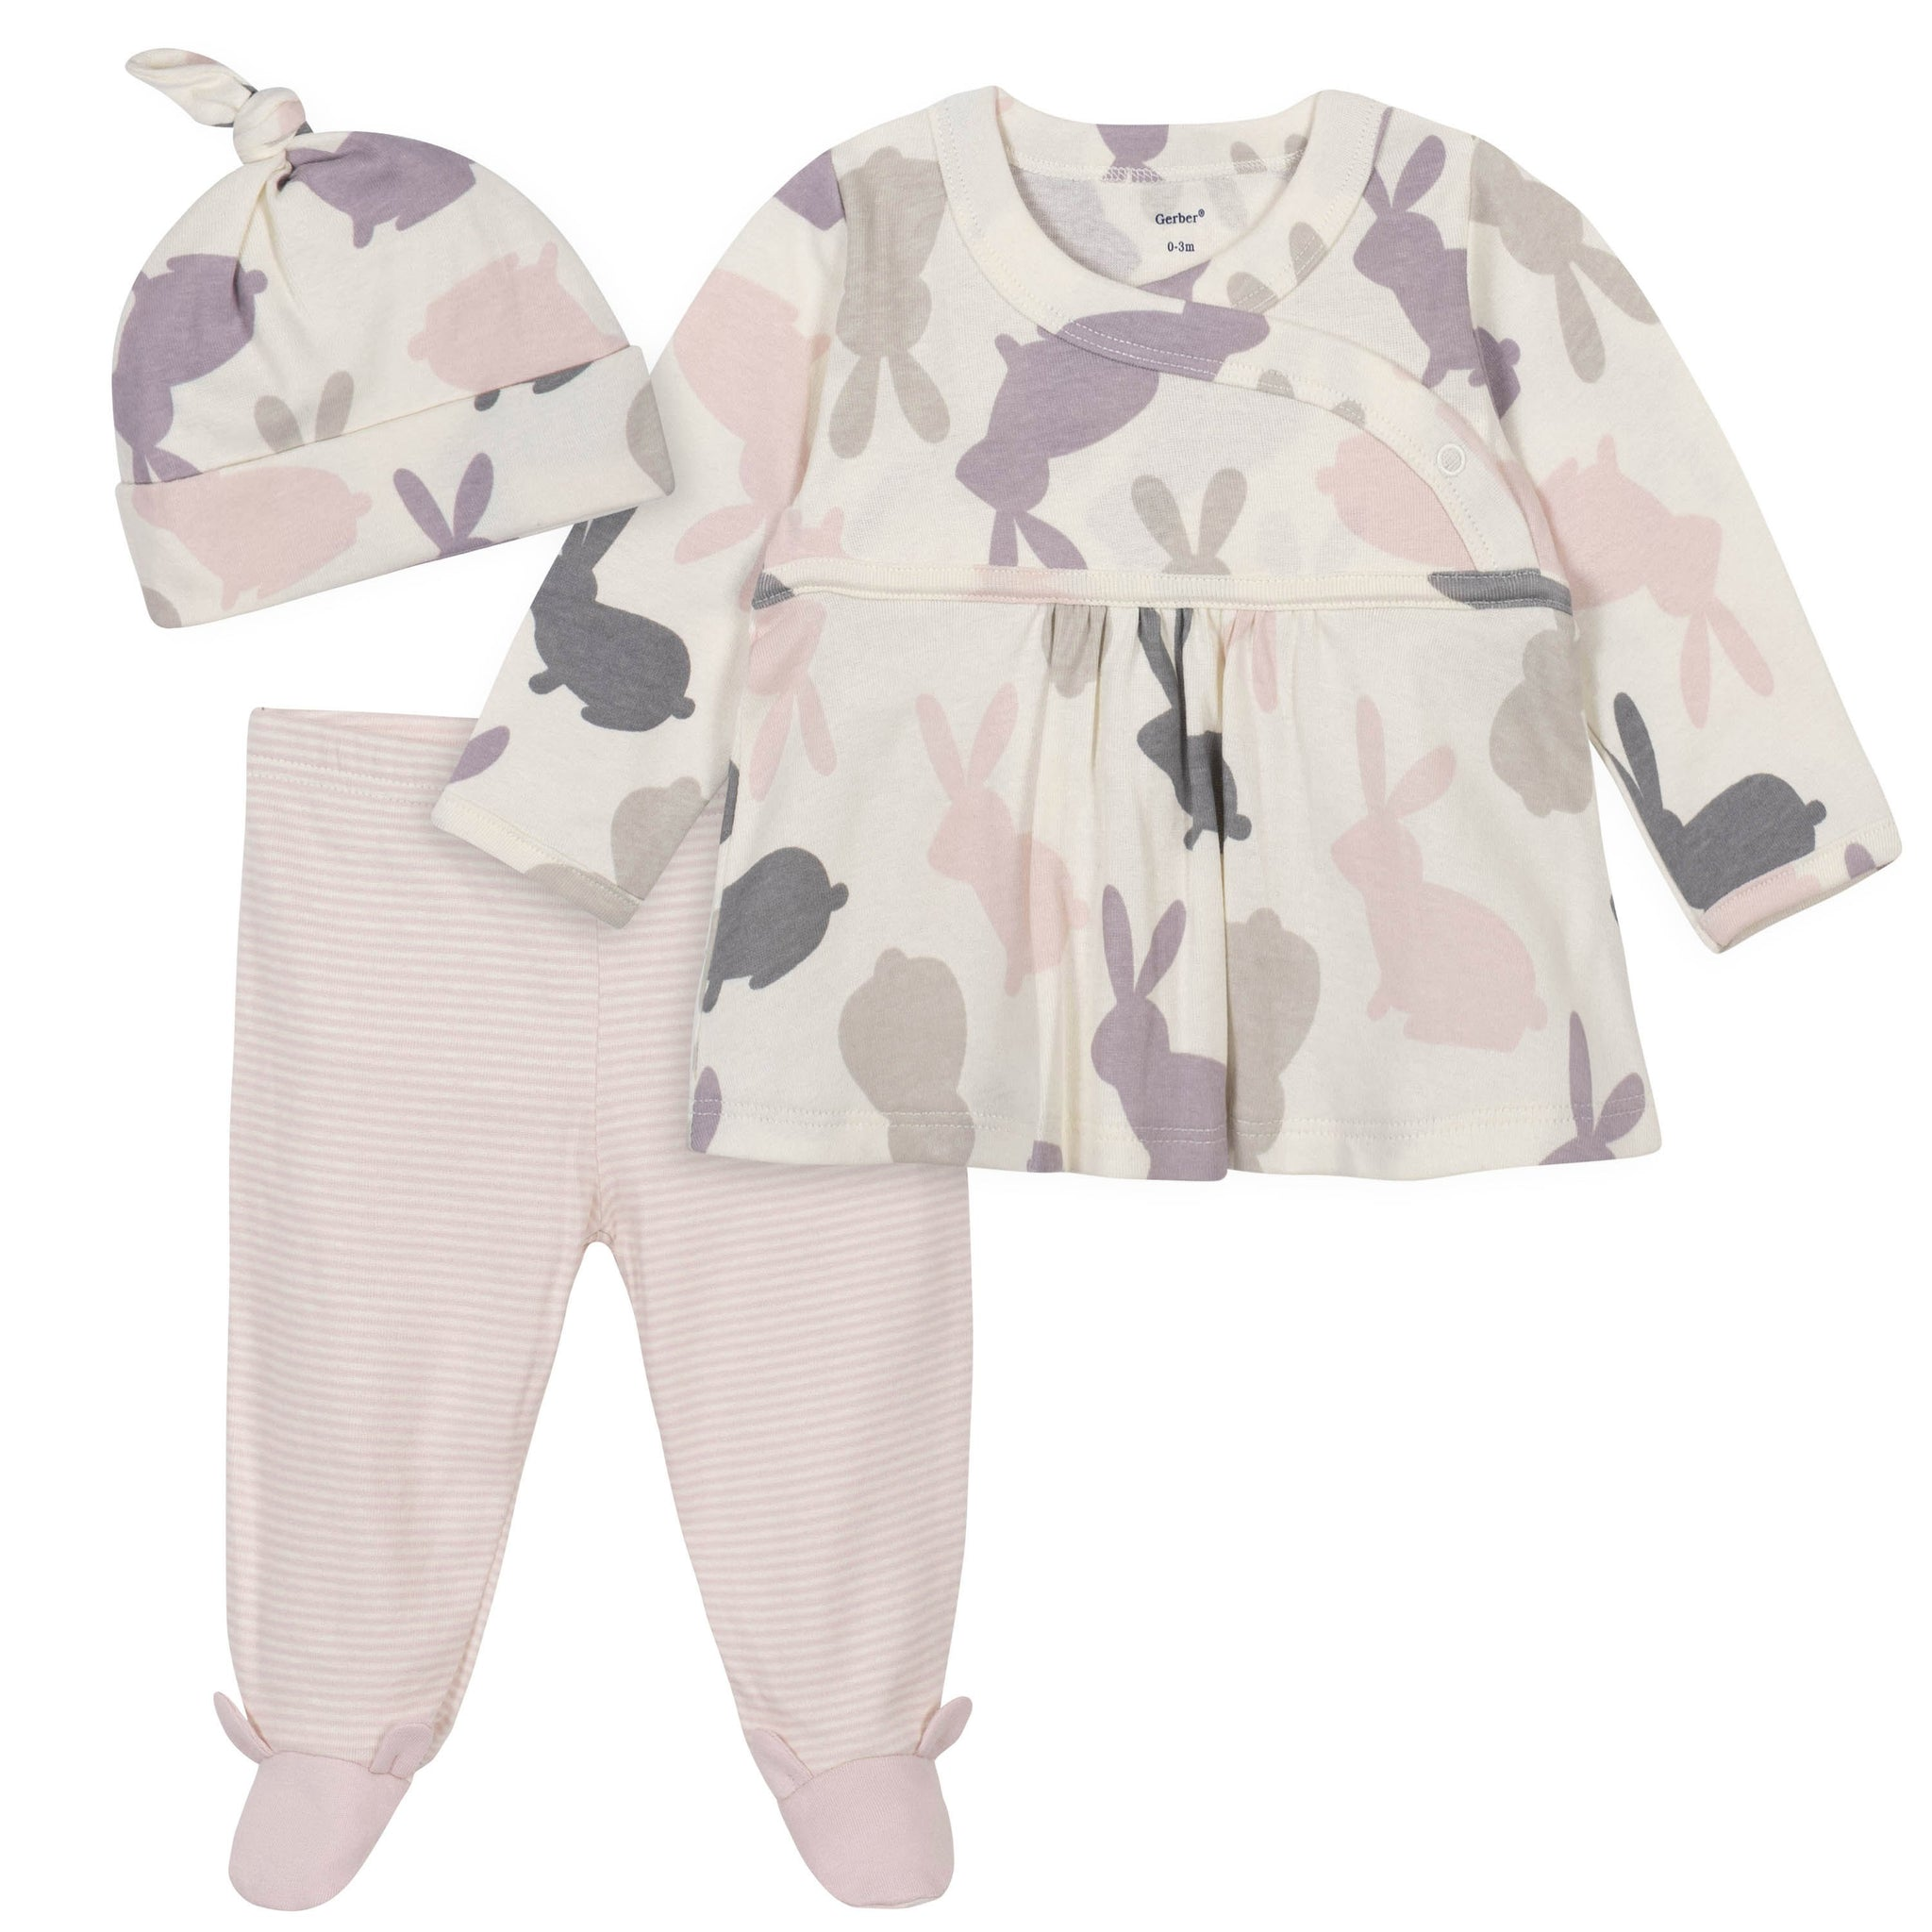 Gerber® 3-Piece Baby Girls Shirt, Footed Pant, and Cap Set - Bunny